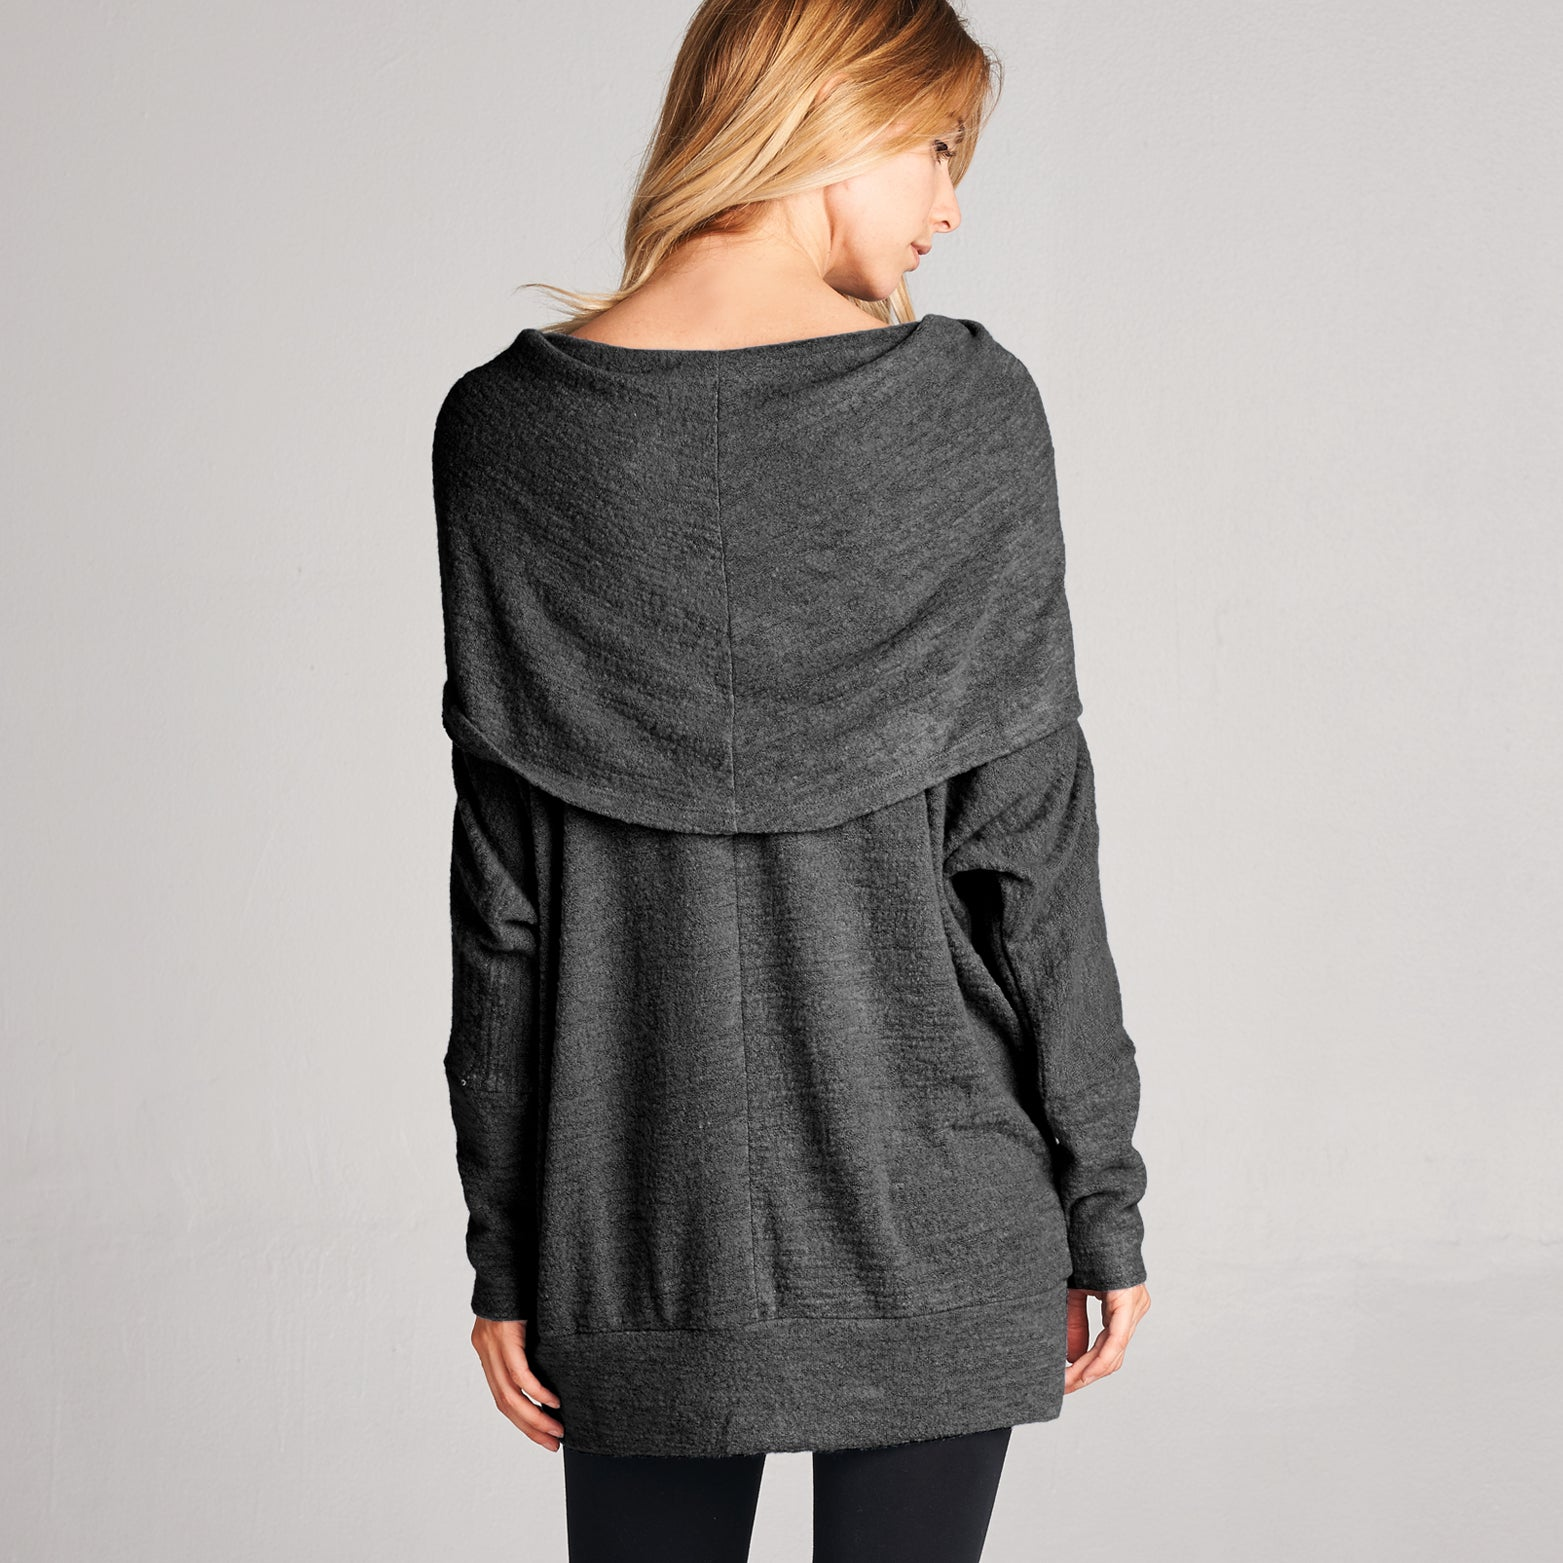 Oversized Cowl Neck Hacci Sweater